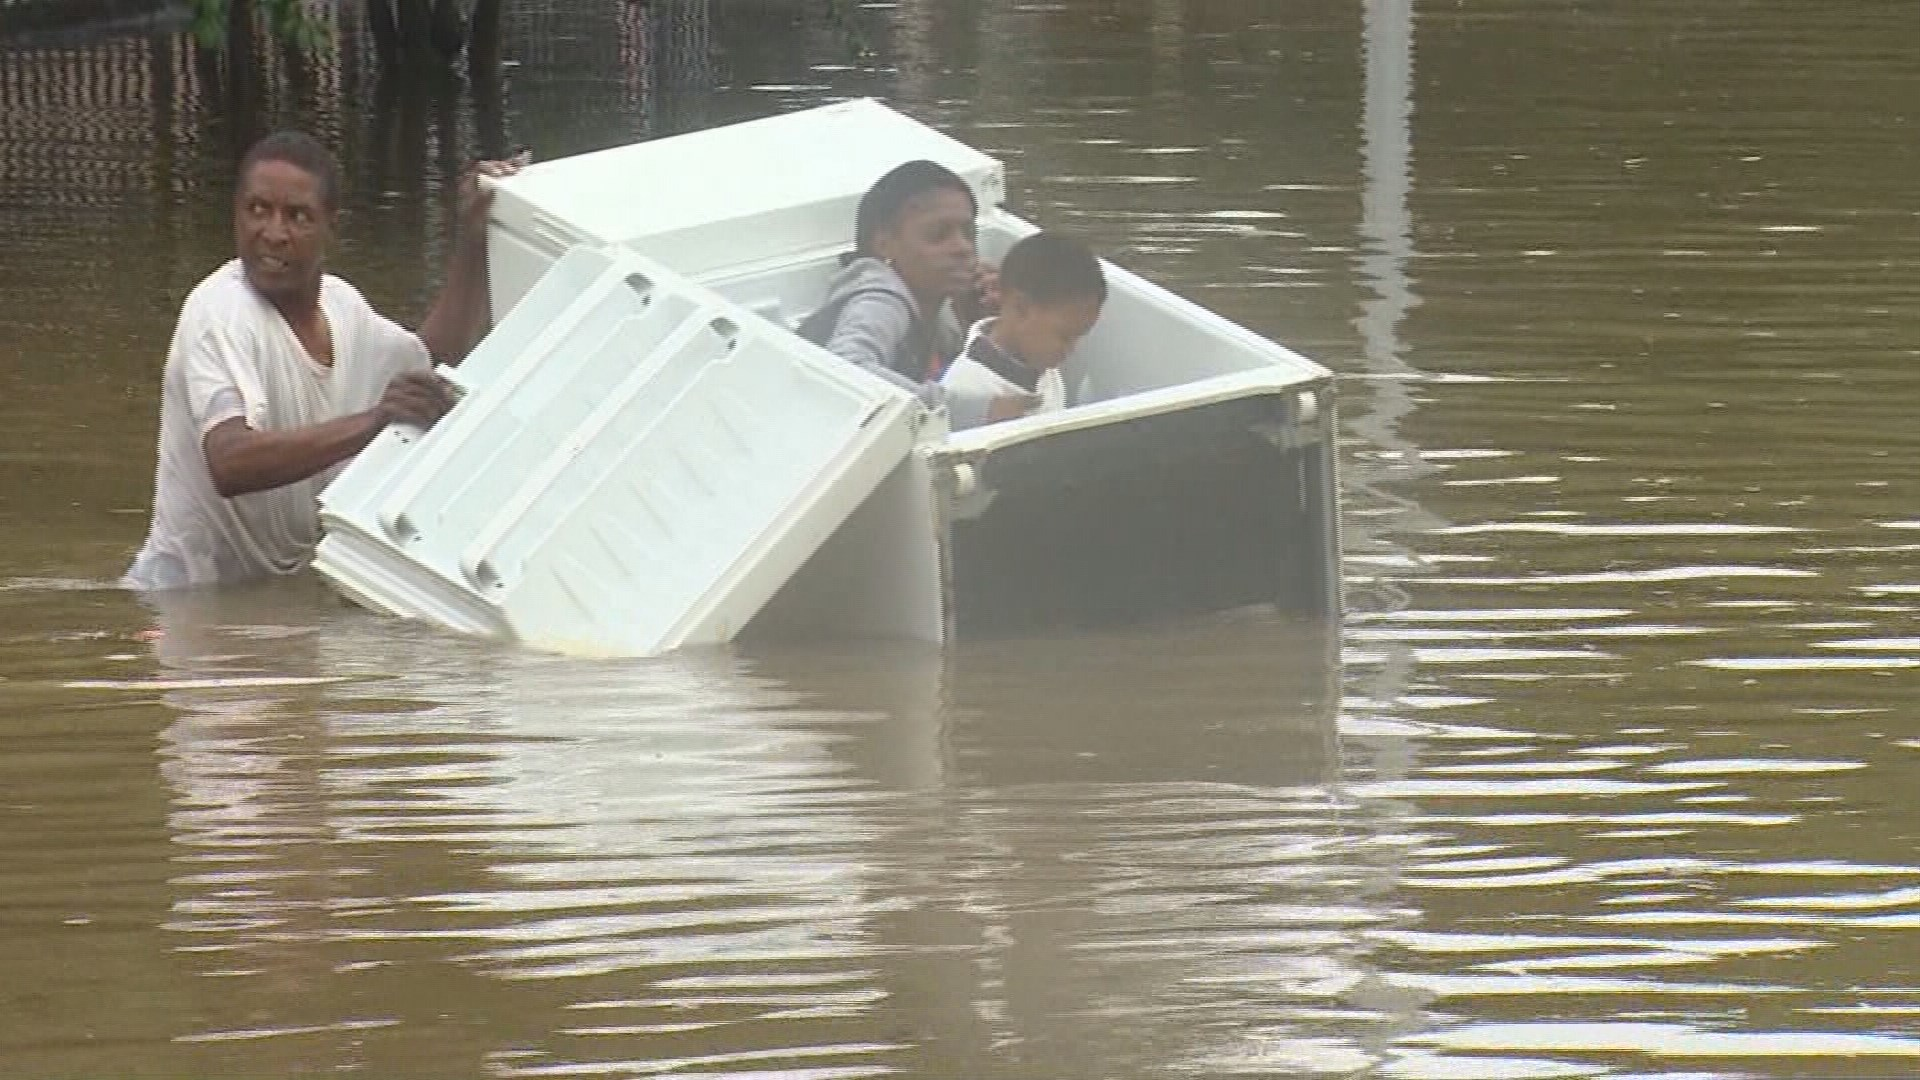 Houston Floods Quot Extremely High Risk Quot Dams Could Be Next Worry Cbs News